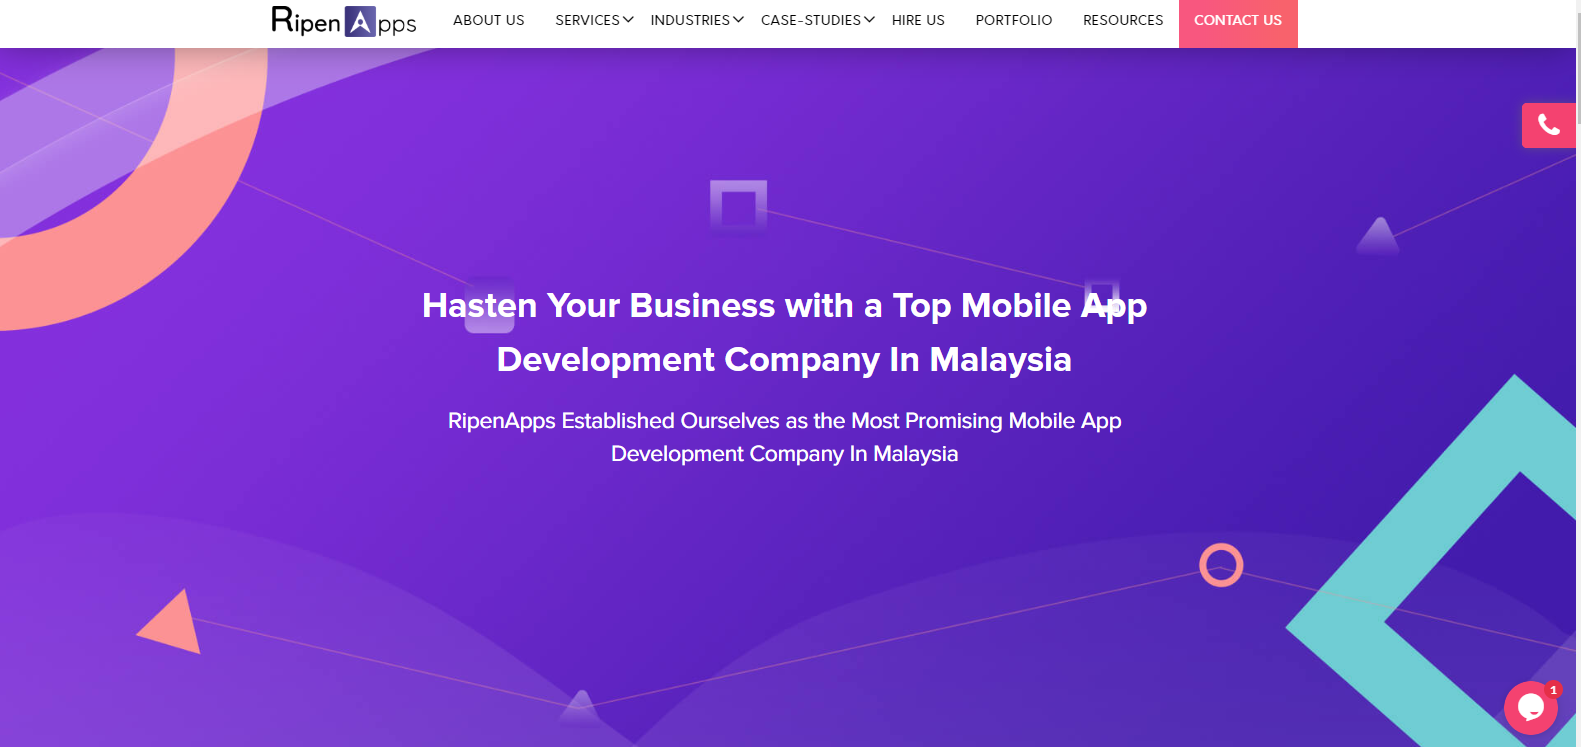 Mobile Apps Company in Malaysia